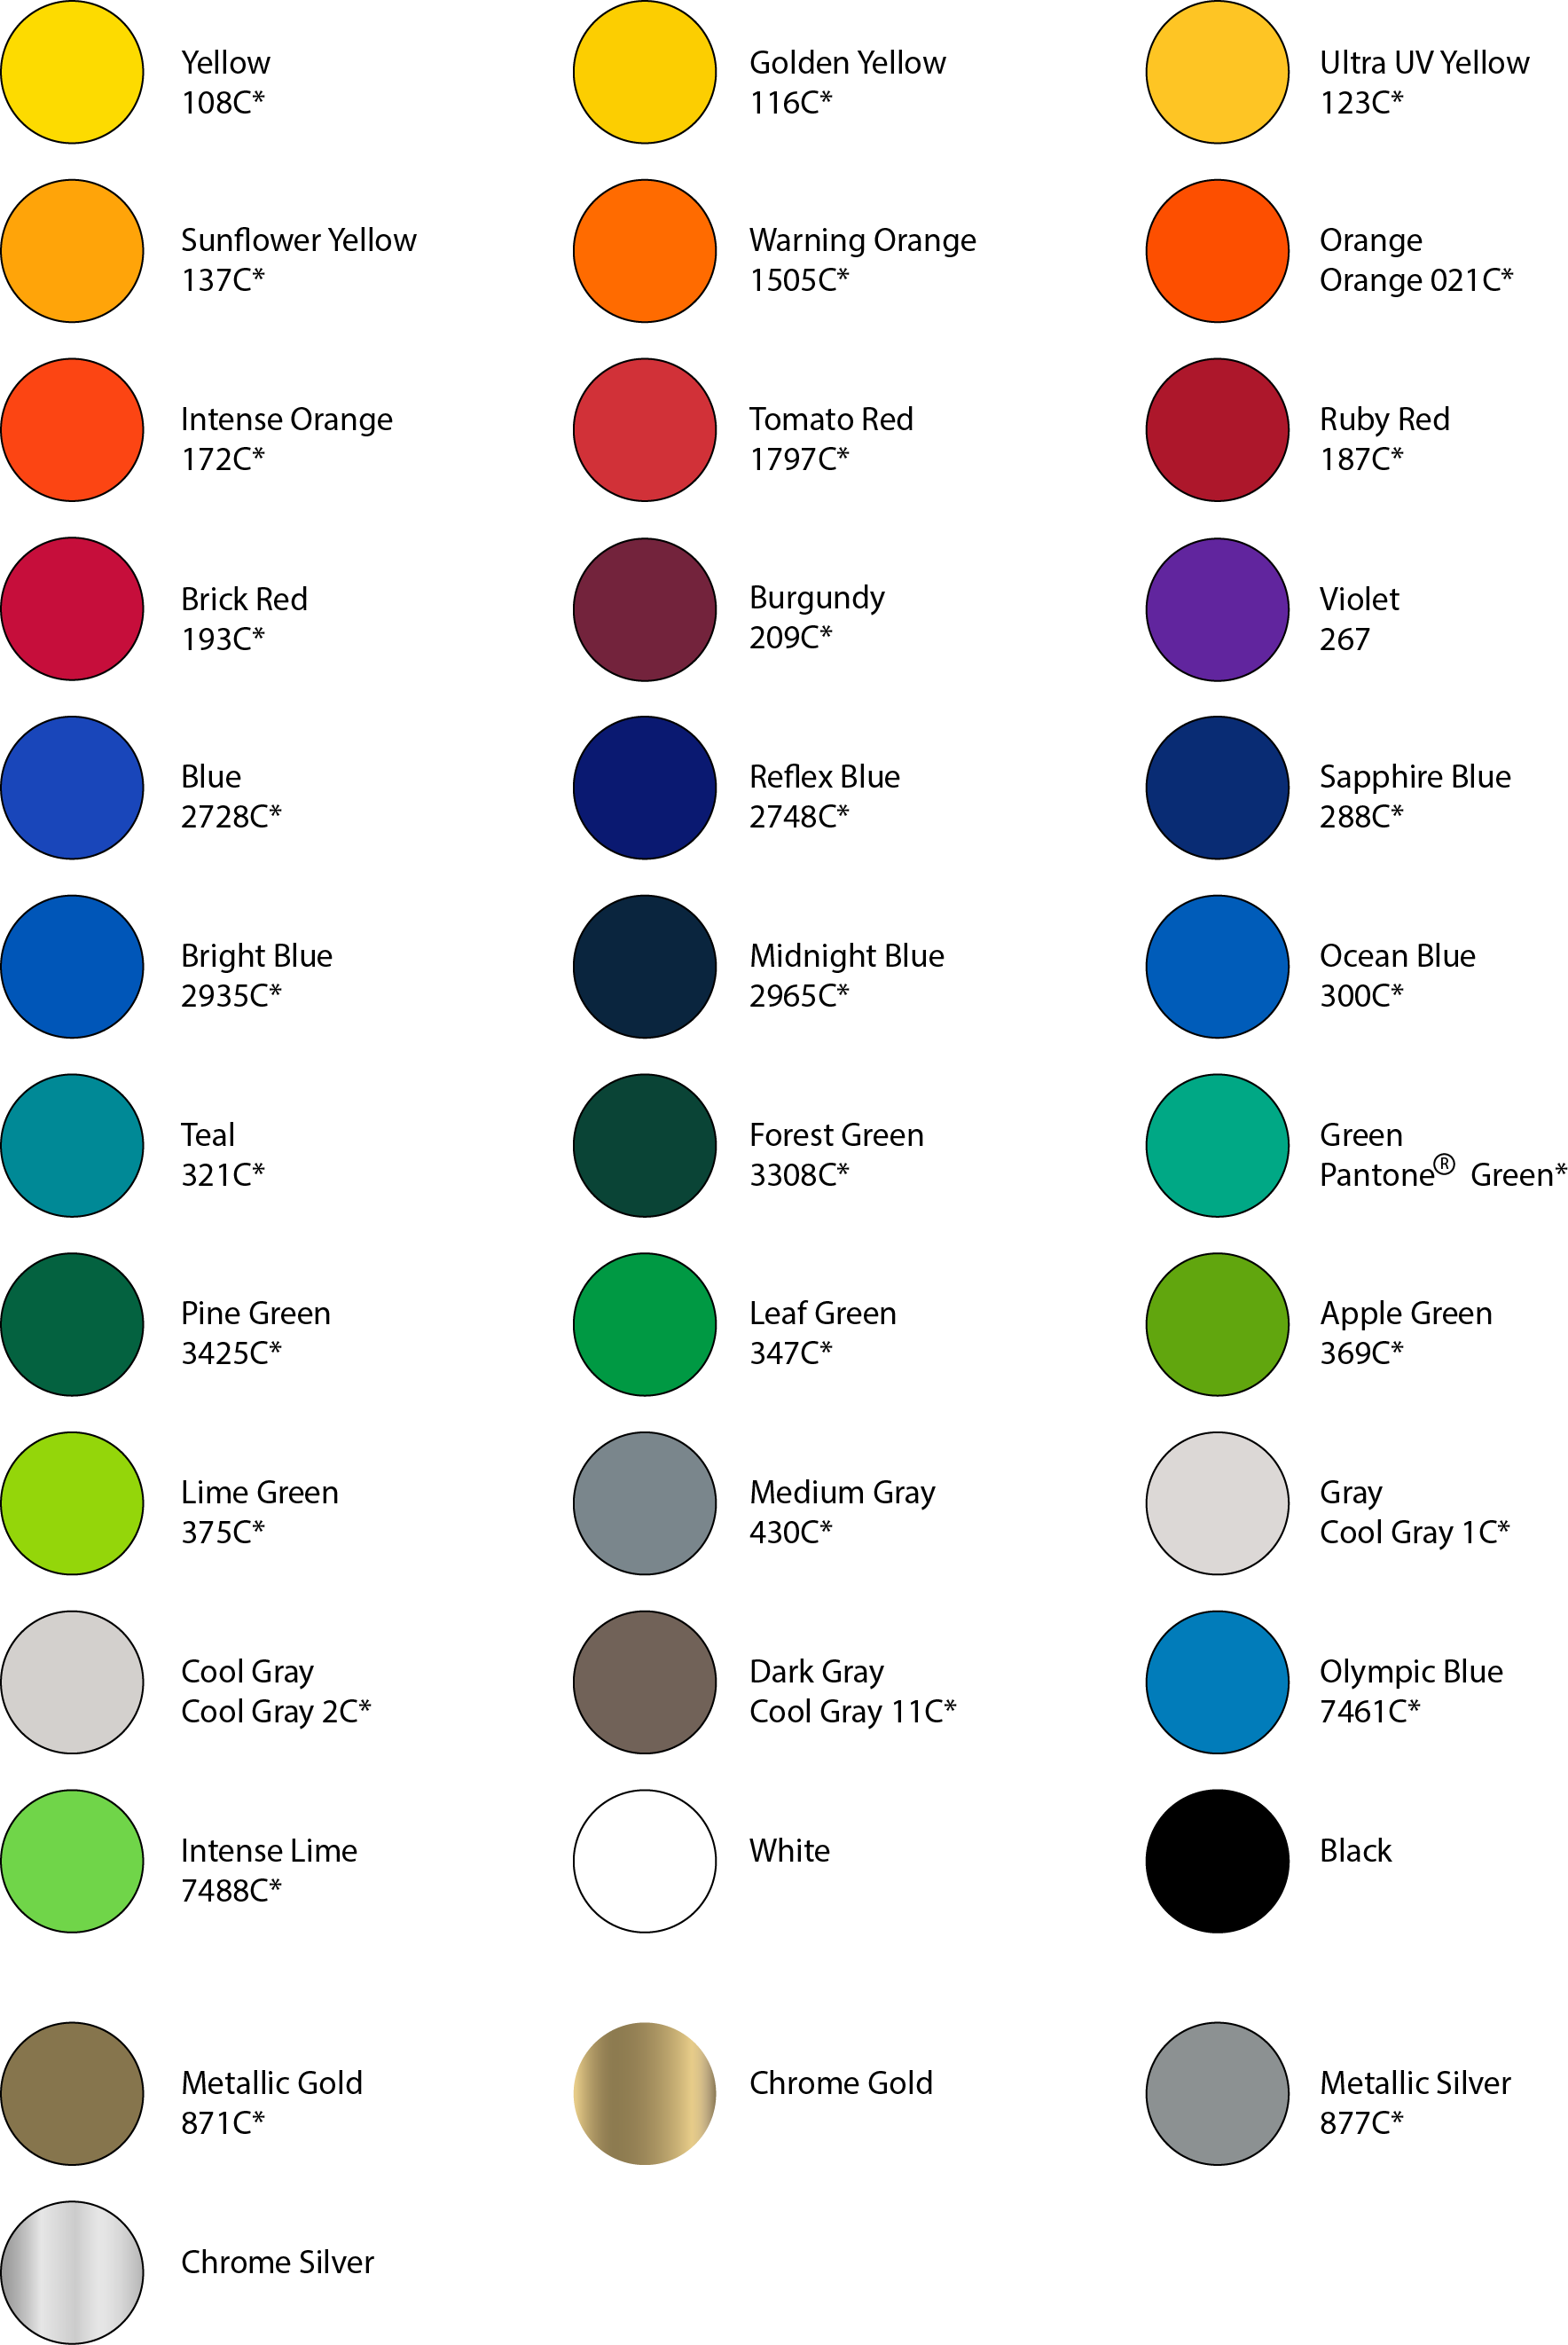 Some of the many spot colors available.